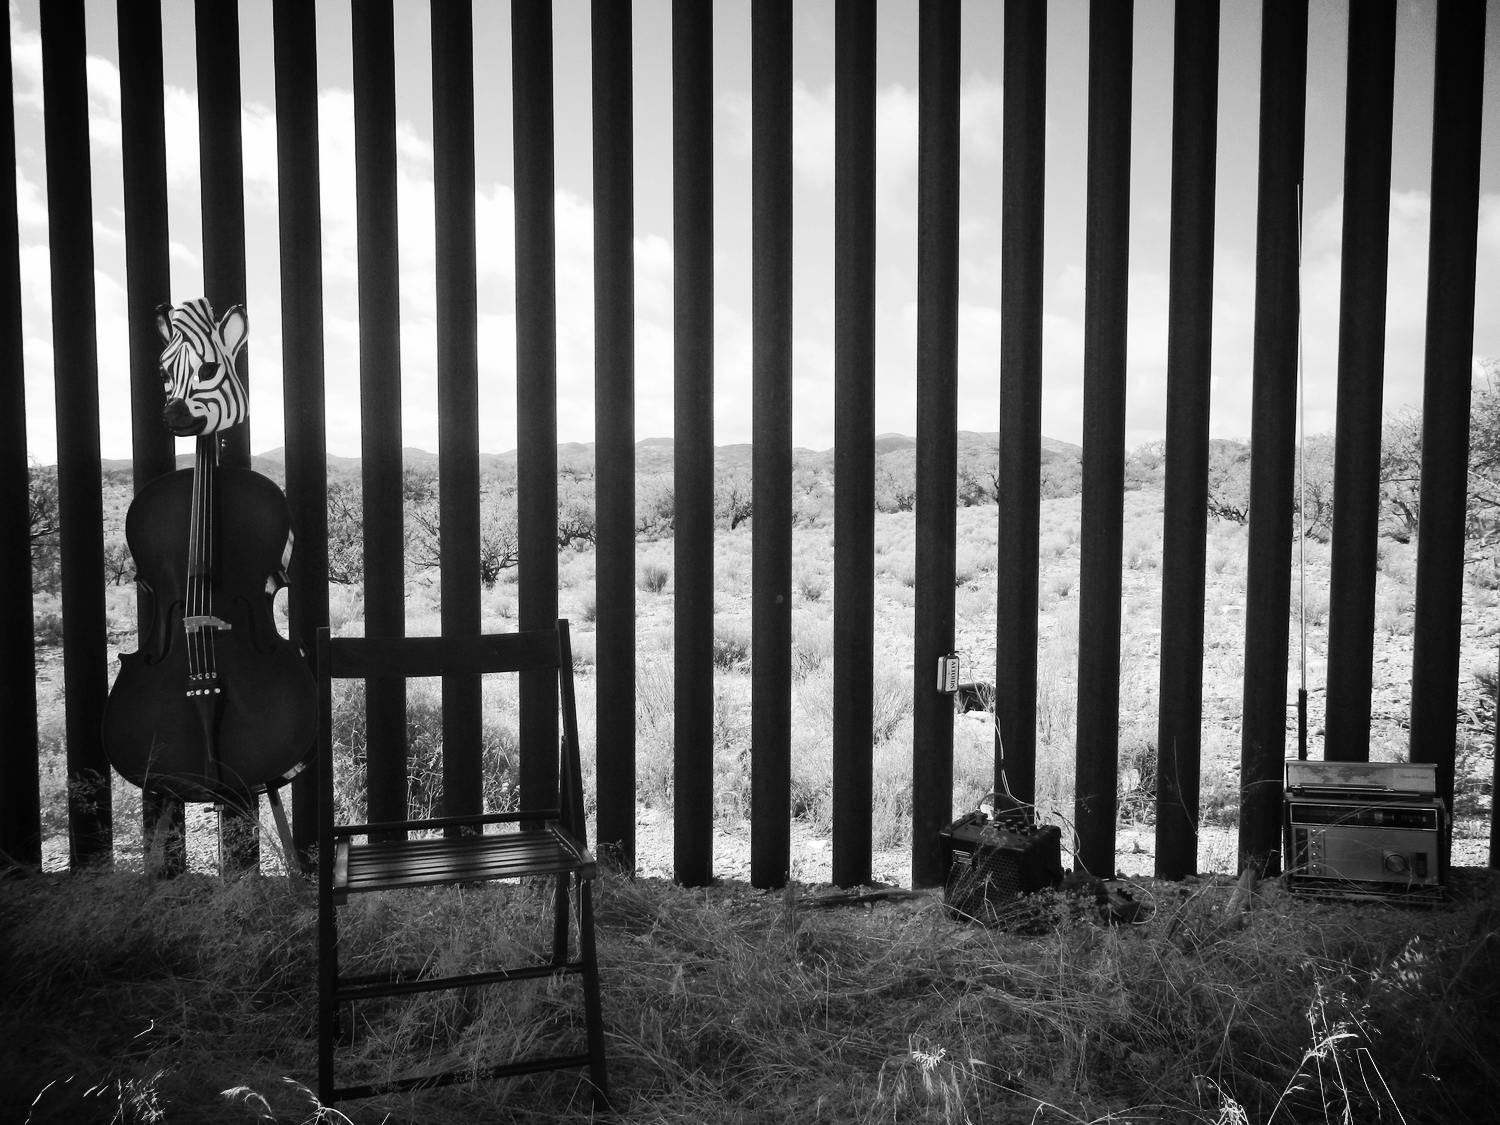 Nogales-Sasabe Border Wall Soundings -- The stage is set for a performance of Performance for Surveillance in Sasabe (2013)